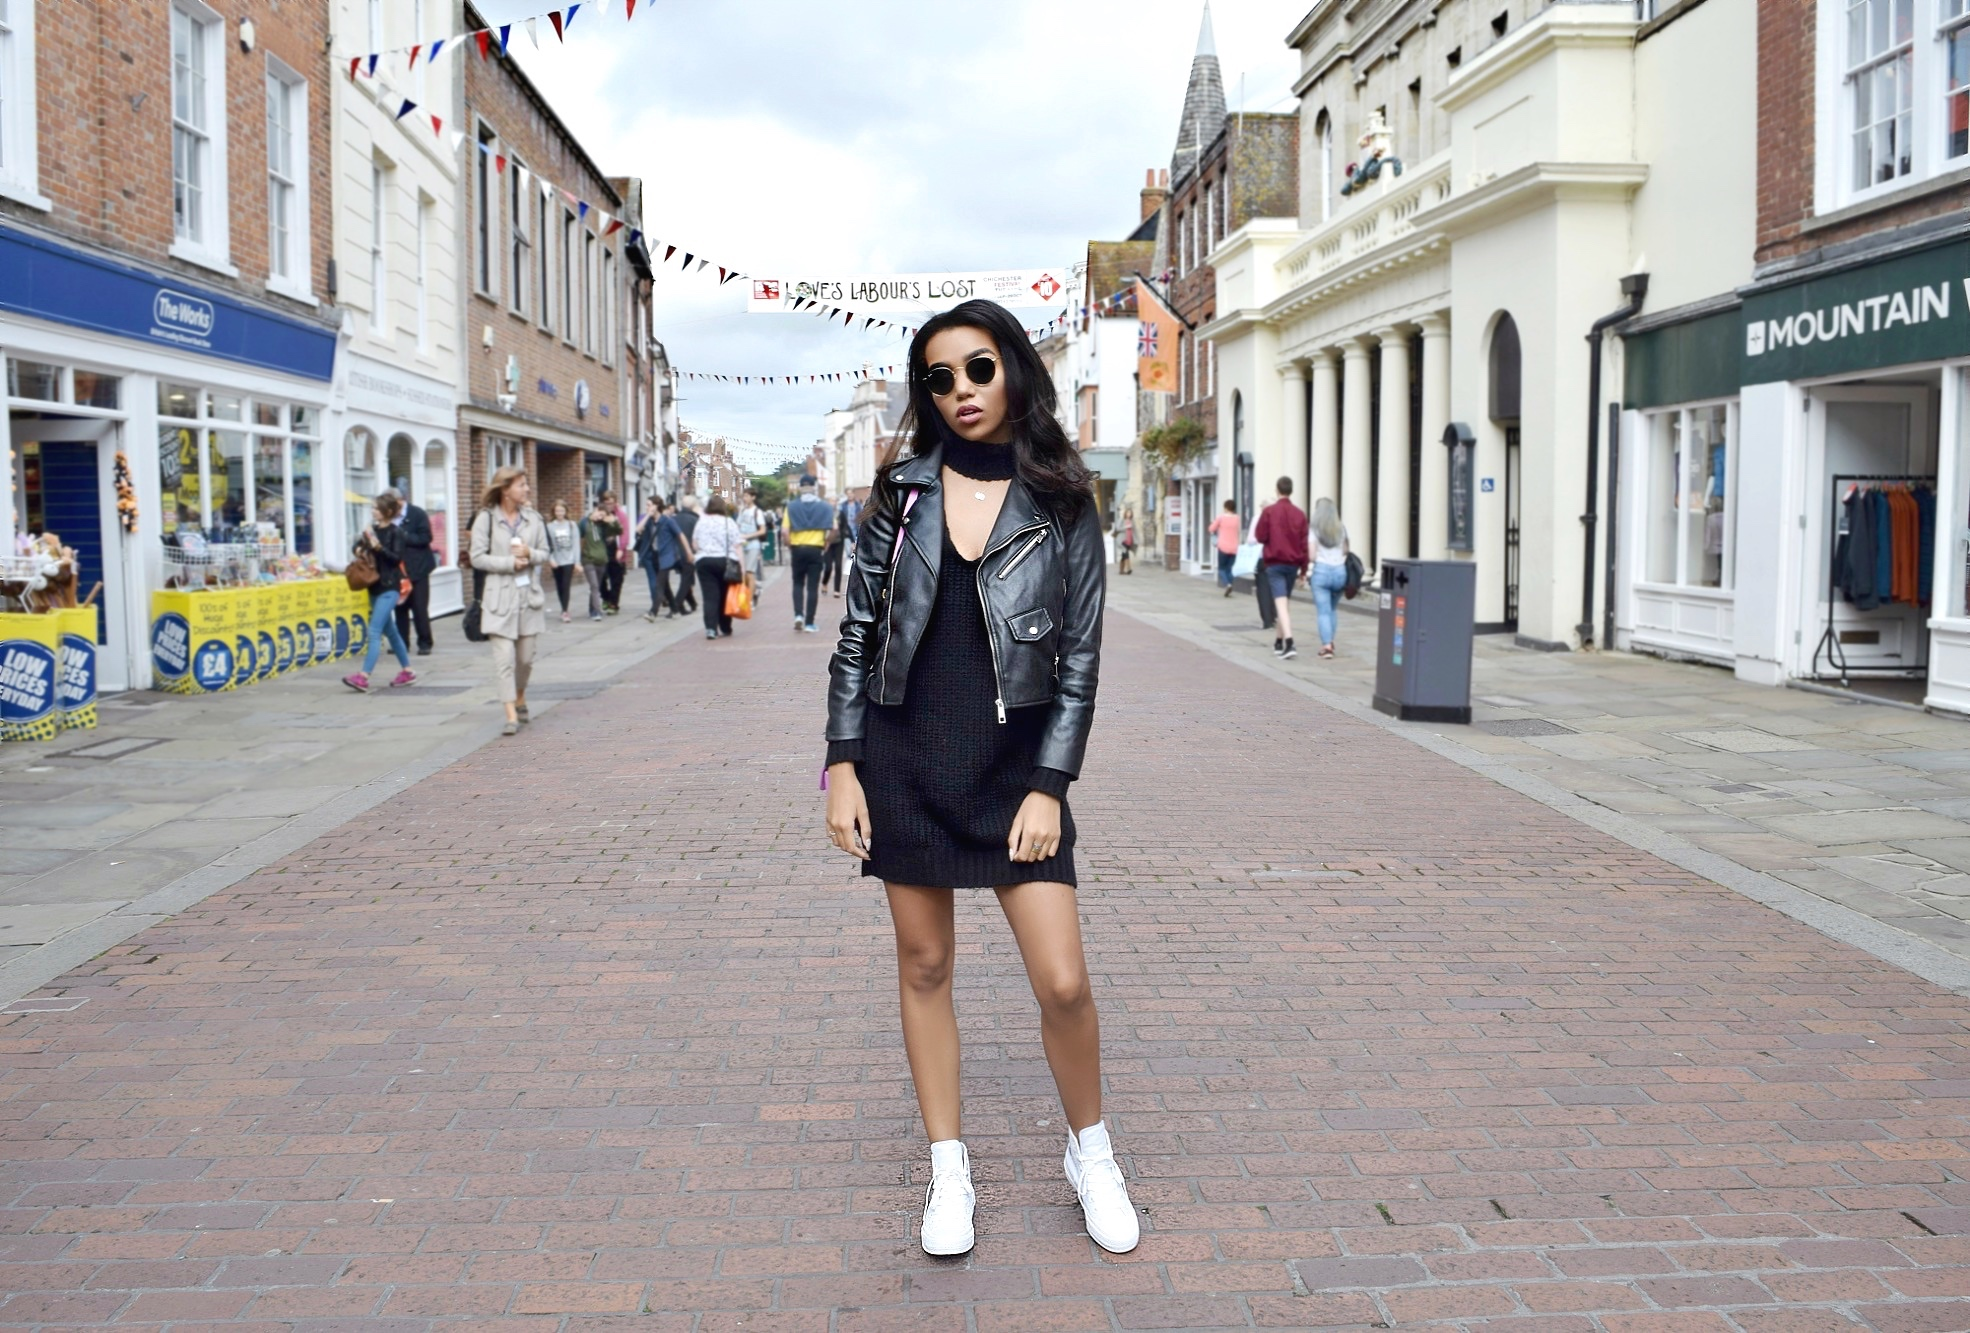 Chichester England // London England Europe Travel Diary // Zara Leather Jacket // Boohoo Sweater Choker Dress #myboohoostyle // Pink Gucci Marmont Bag // White Converse & Round Ray Bans // Los Angeles Fashion Blogger Daphne Blunt: To Style, With Love